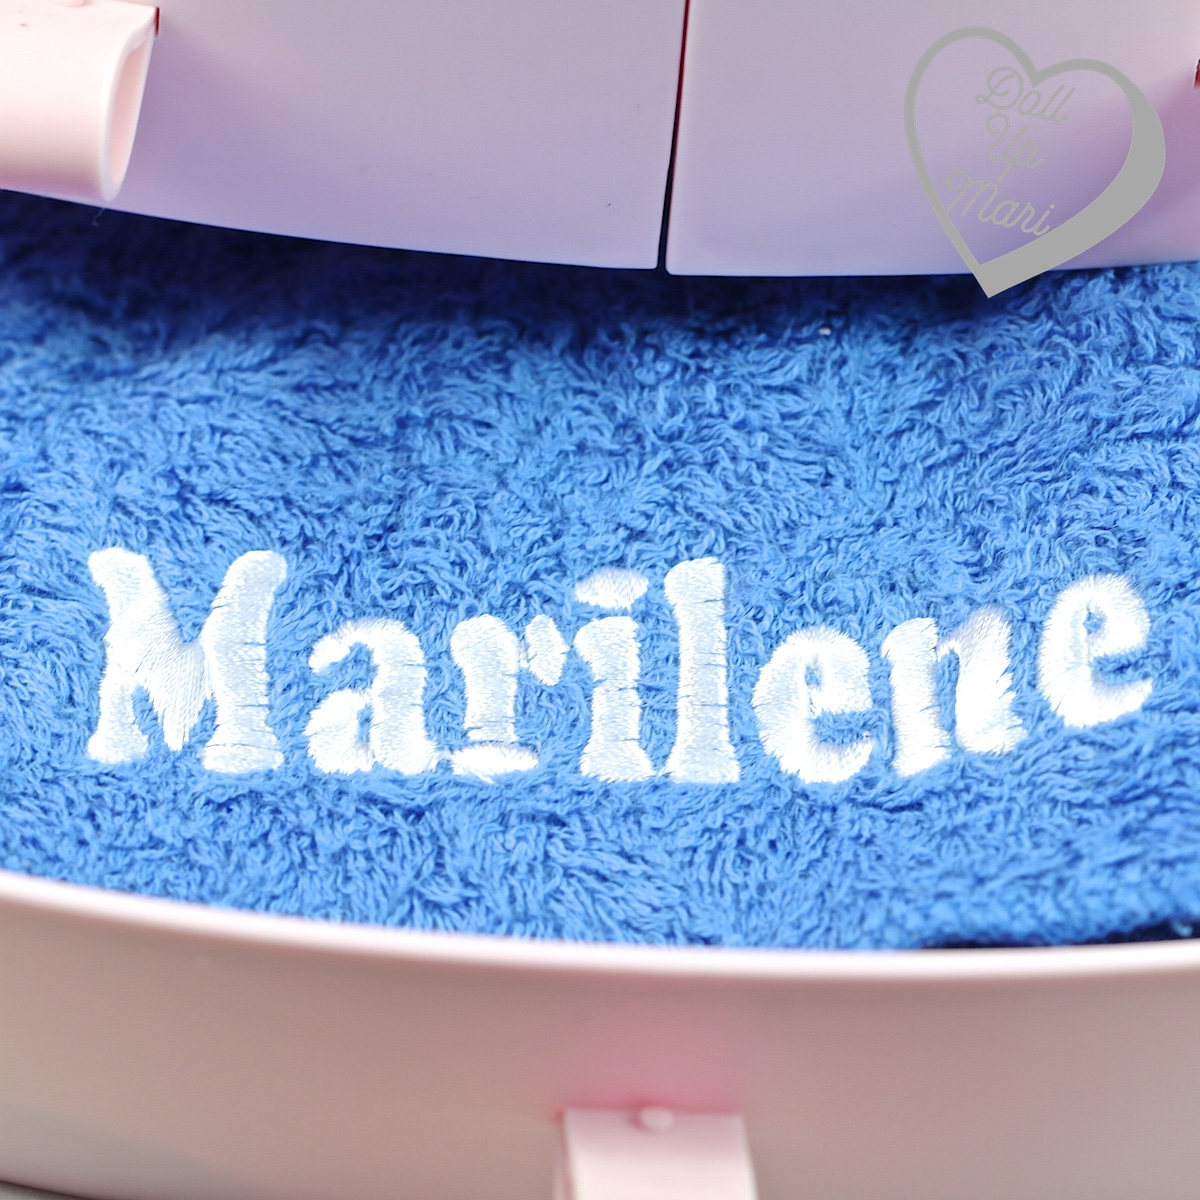 personalized Marilene towel